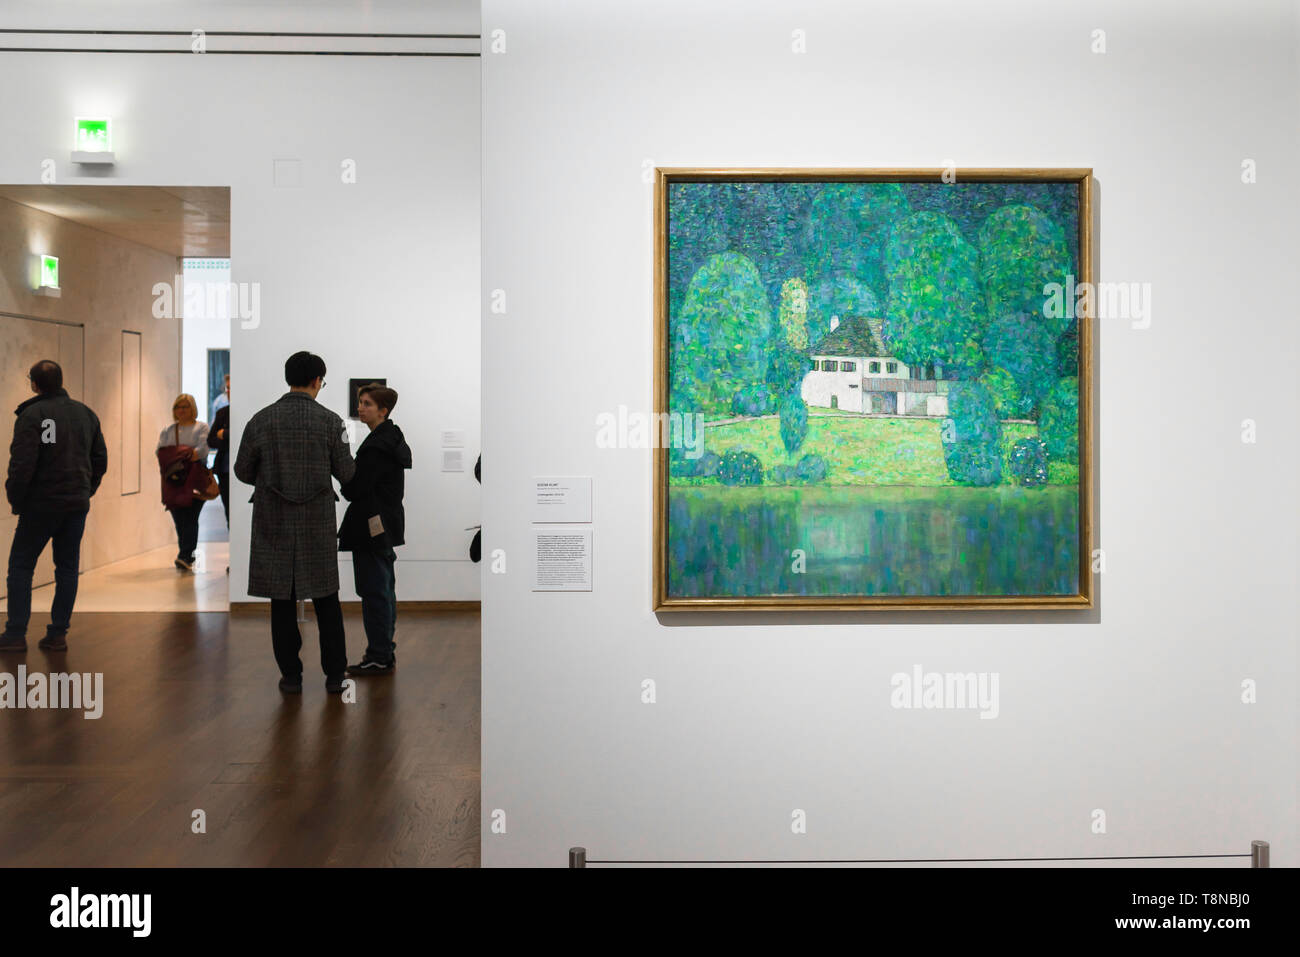 Klimt Leopold Museum, view of a landscape by Gustav Klimt titled Litzlbergkeller Am Attersee hanging in the Leopold Museum in Vienna, Austria. Stock Photo